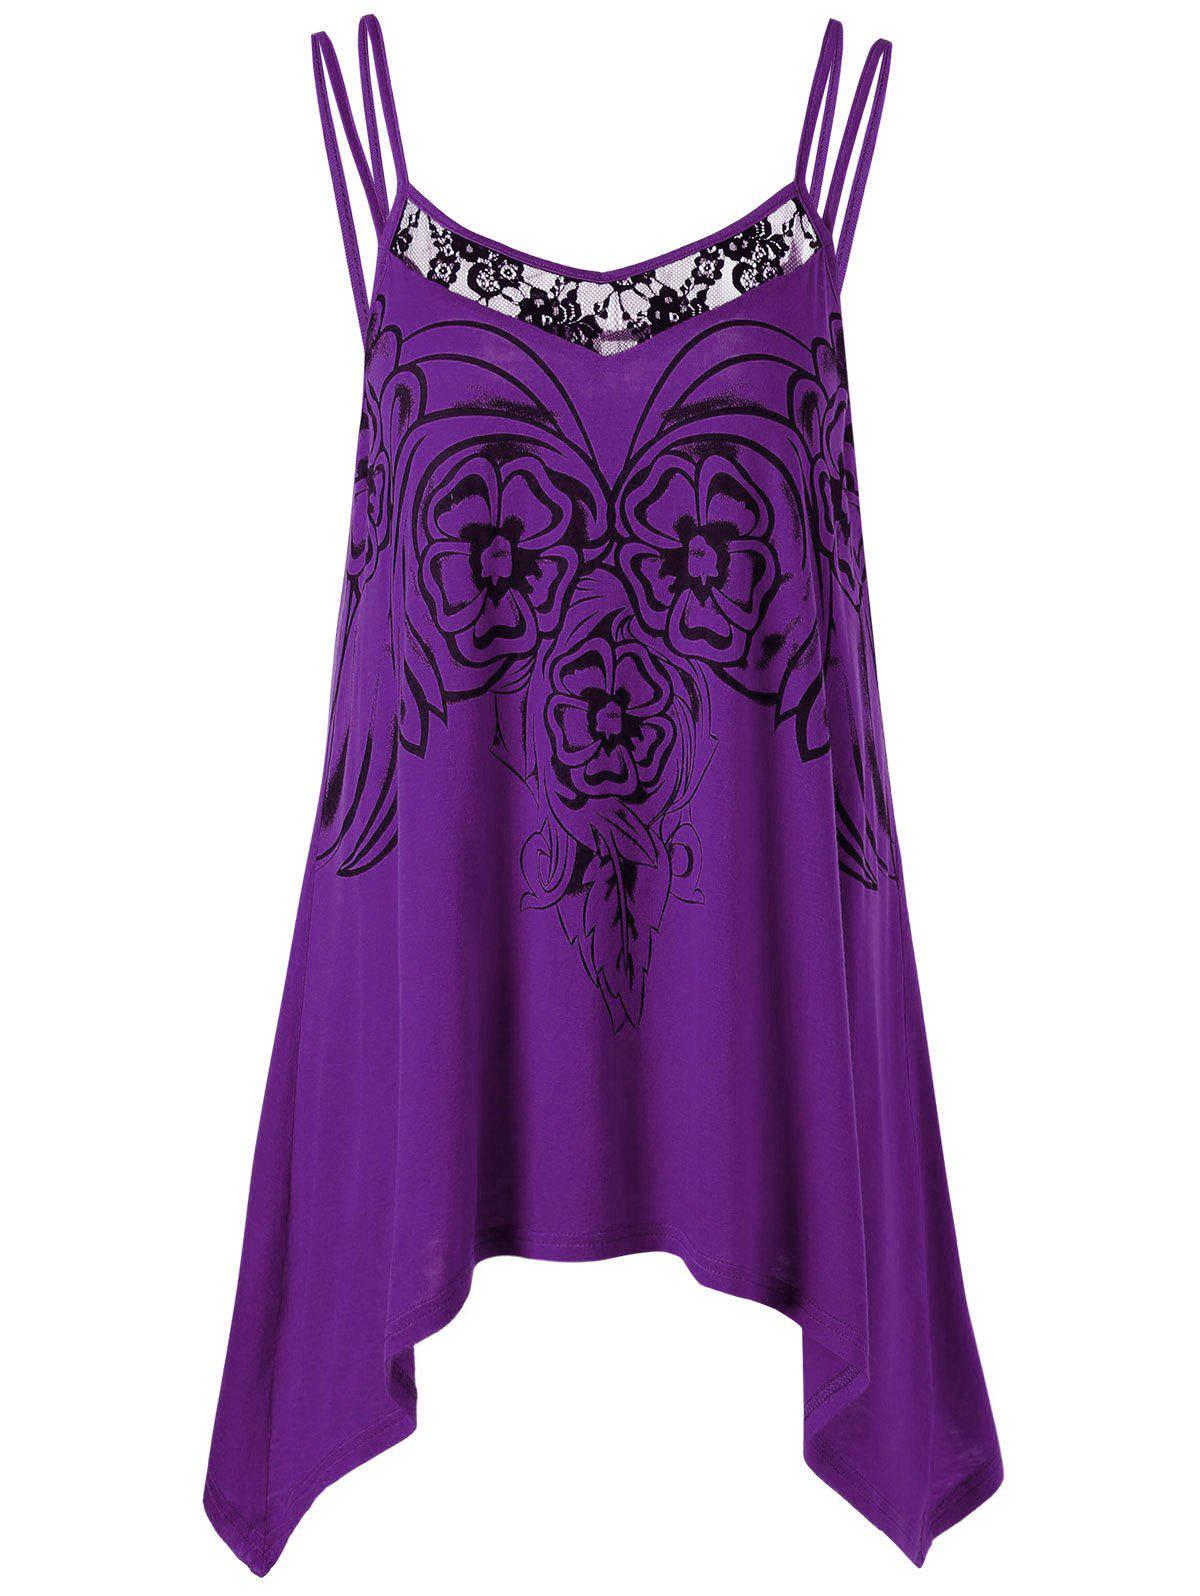 Asymmetric Plus Size Cami Tunic TopWOMEN<br><br>Size: 2XL; Color: PURPLE; Material: Rayon; Shirt Length: Long; Sleeve Length: Sleeveless; Collar: Spaghetti Strap; Style: Casual; Season: Summer; Embellishment: Lace; Pattern Type: Floral; Weight: 0.2040kg; Package Contents: 1 x Top;